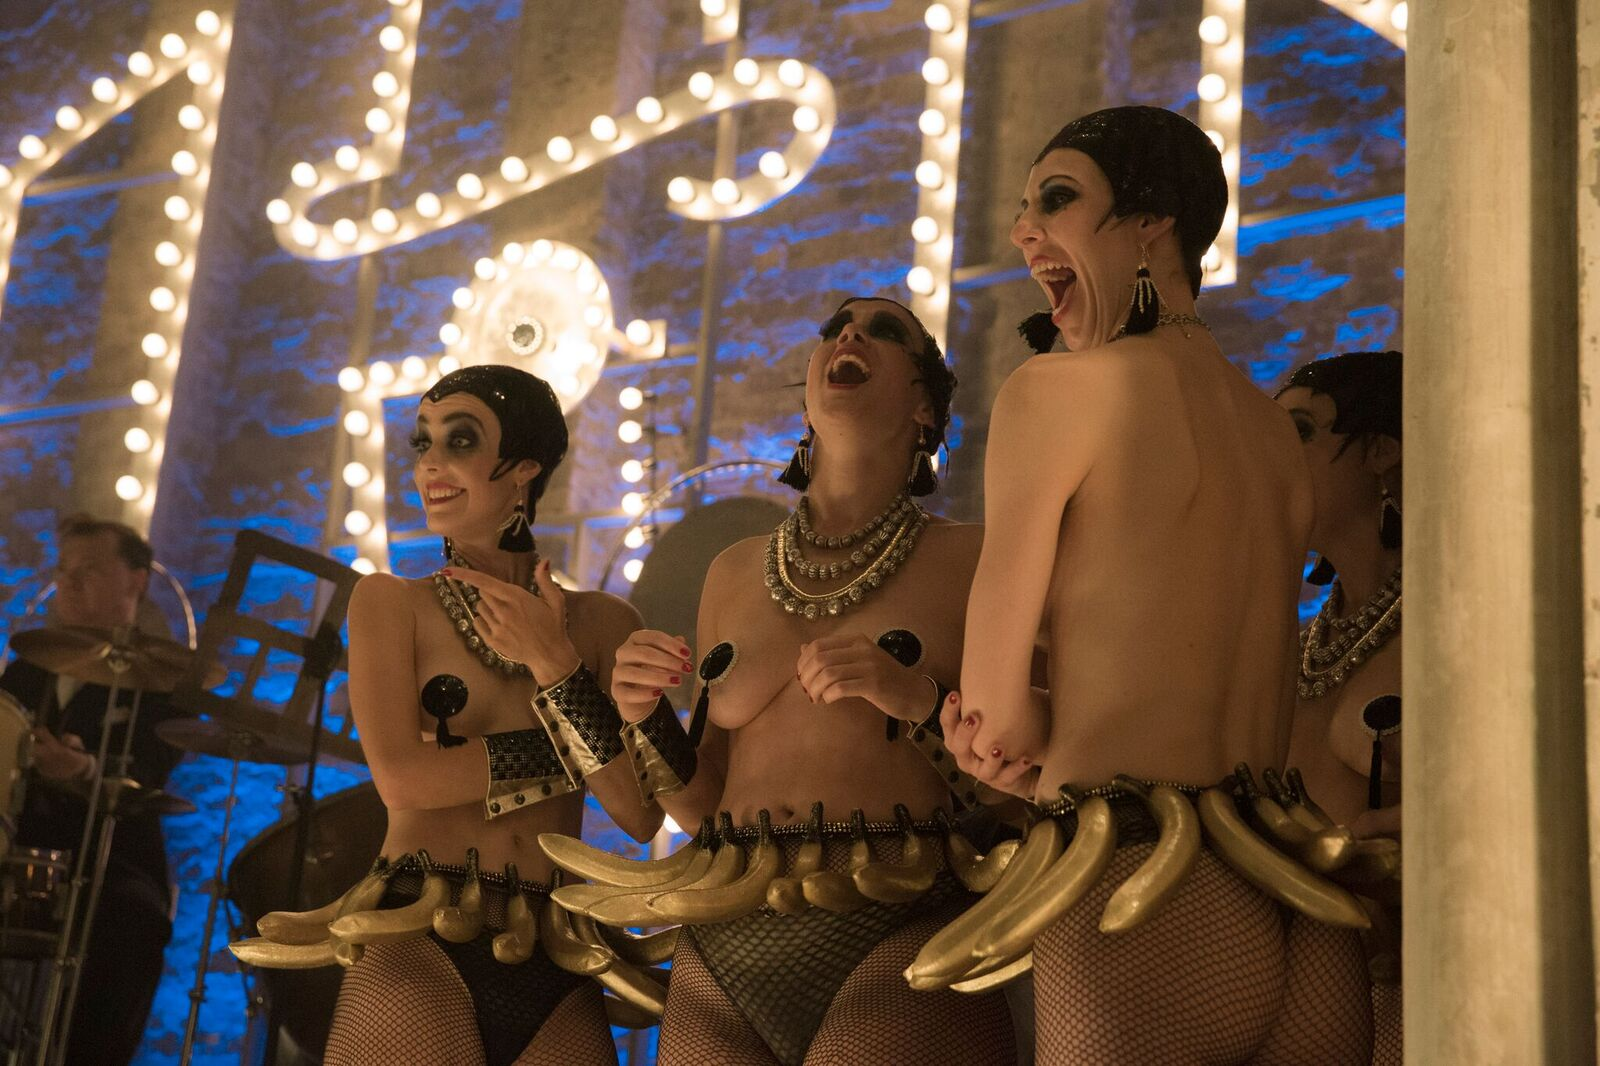 Babylon Berlin night club